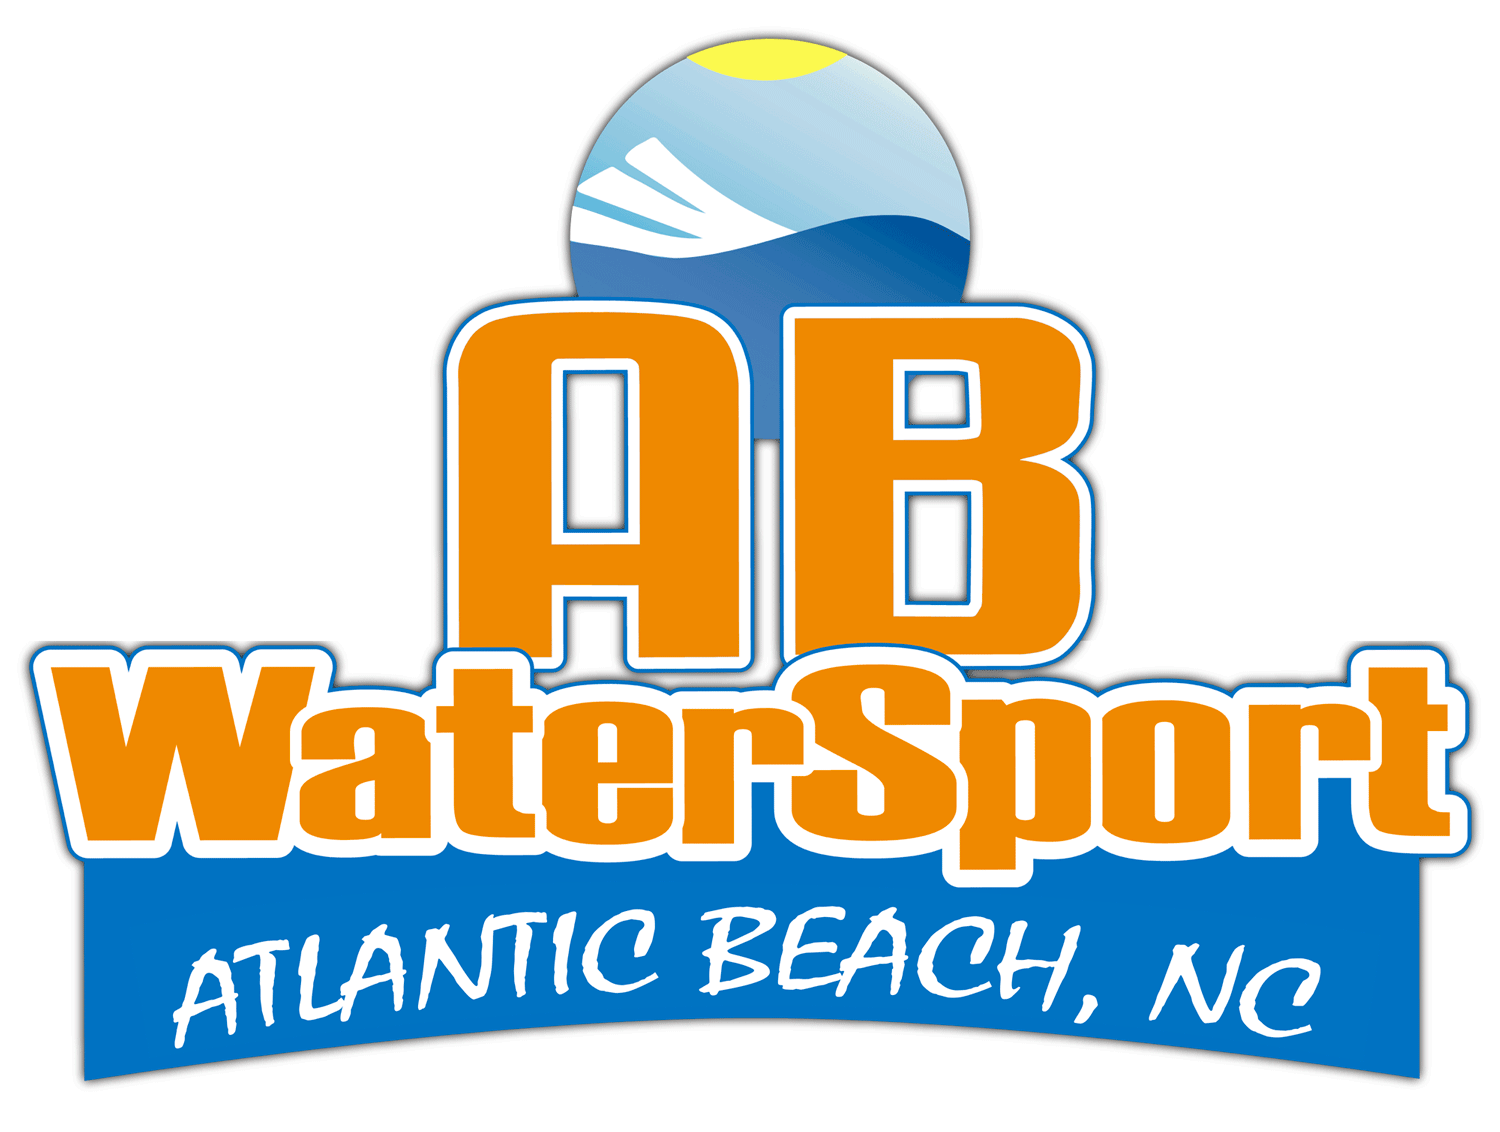 atlanticbeach watersports logo